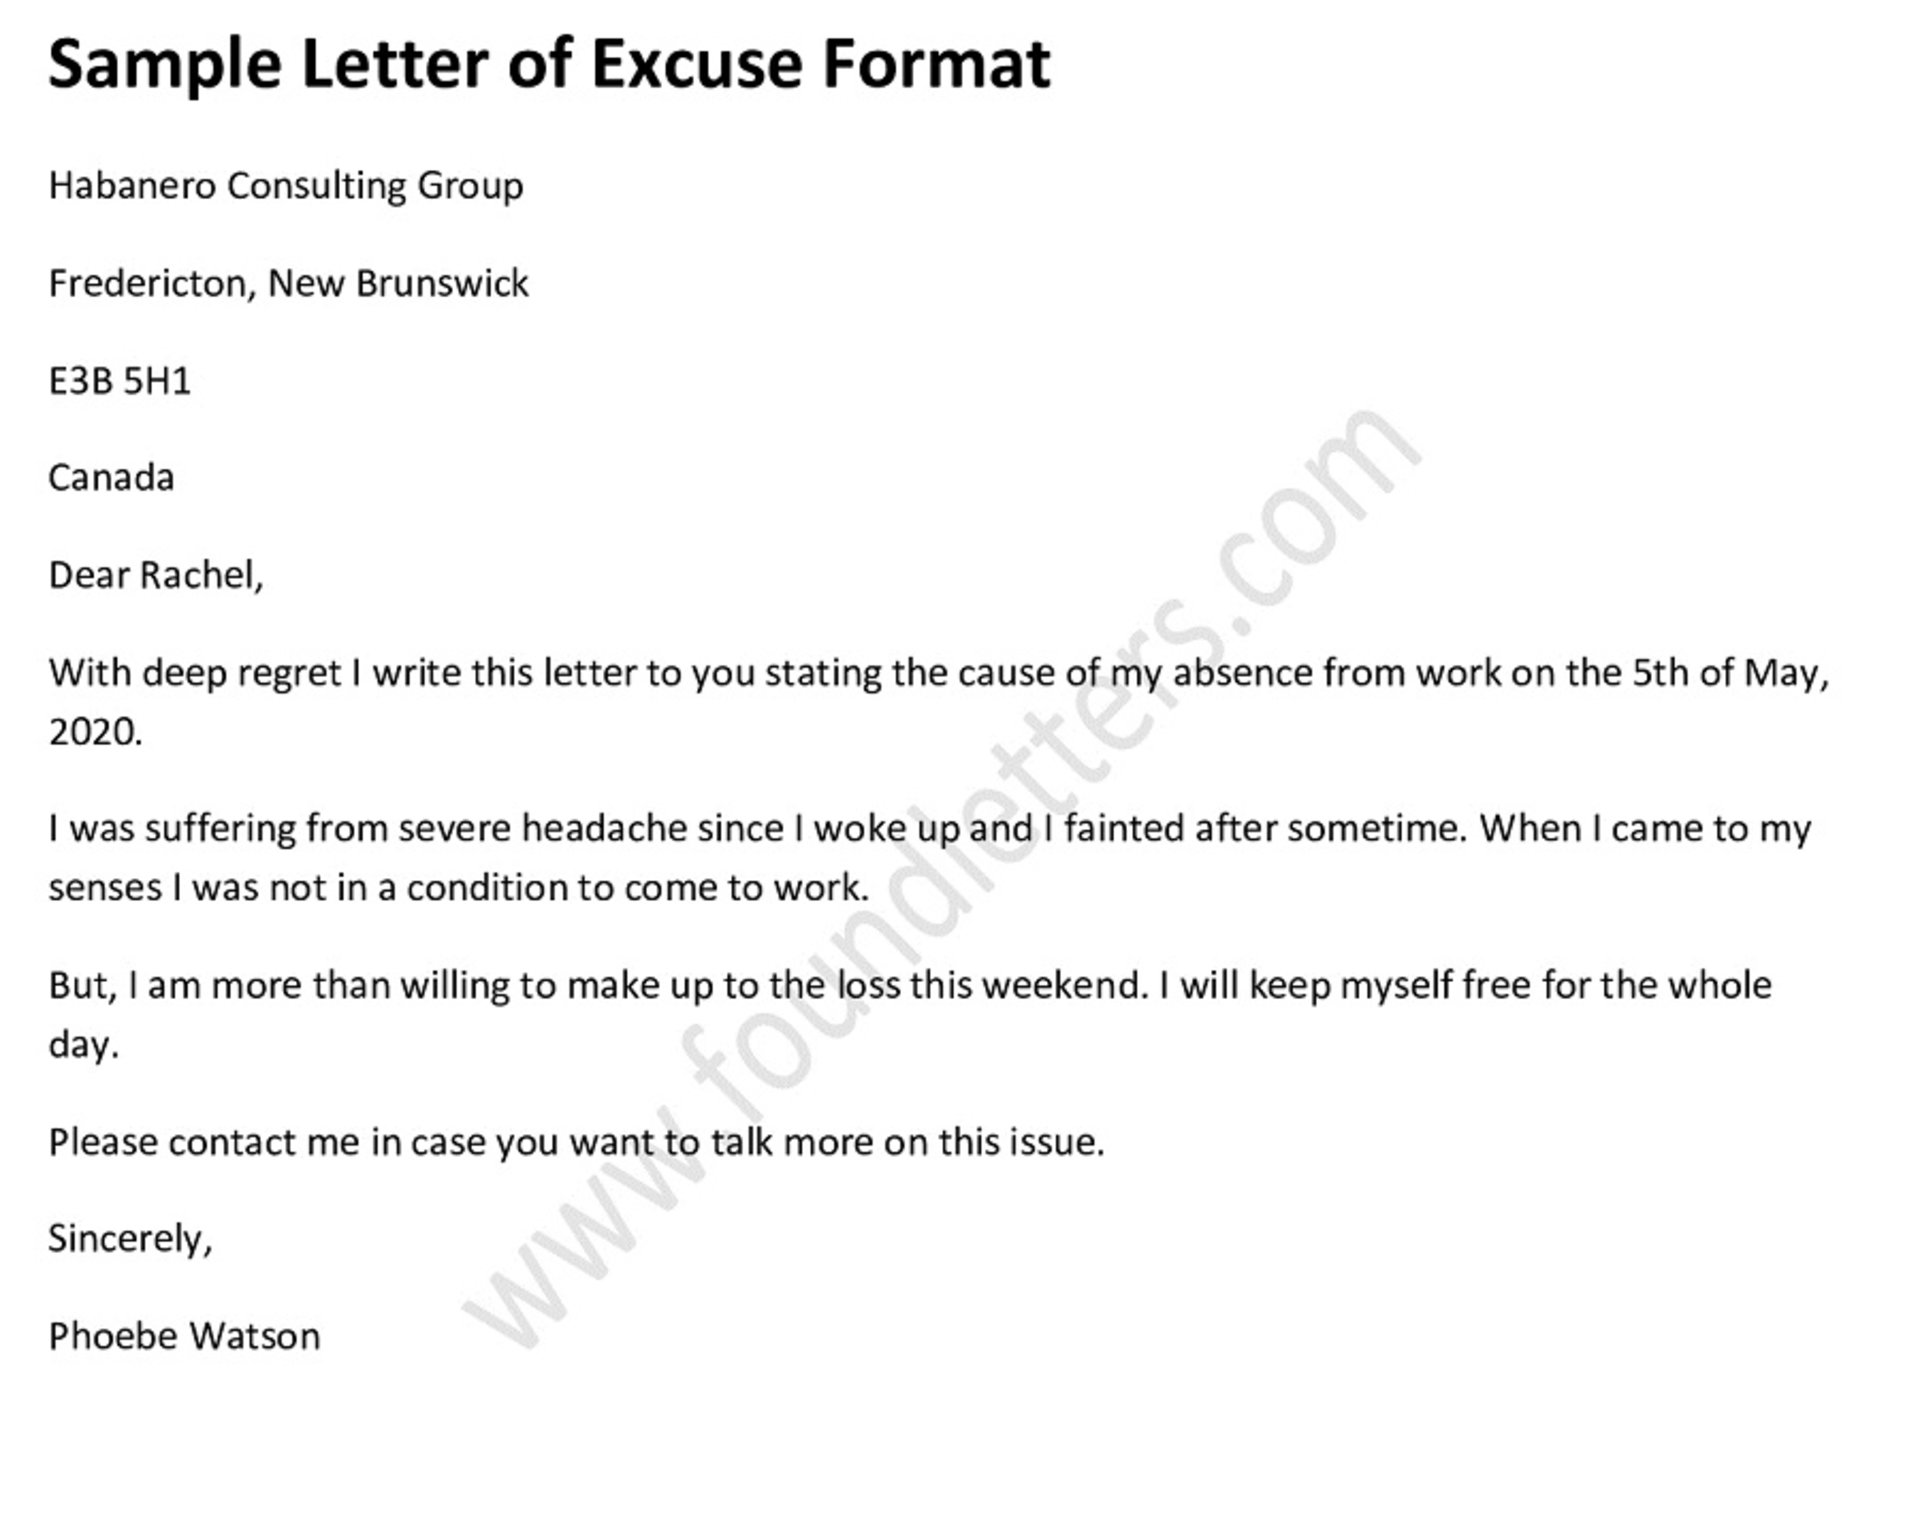 Excuse From Work Letter from res.cloudinary.com